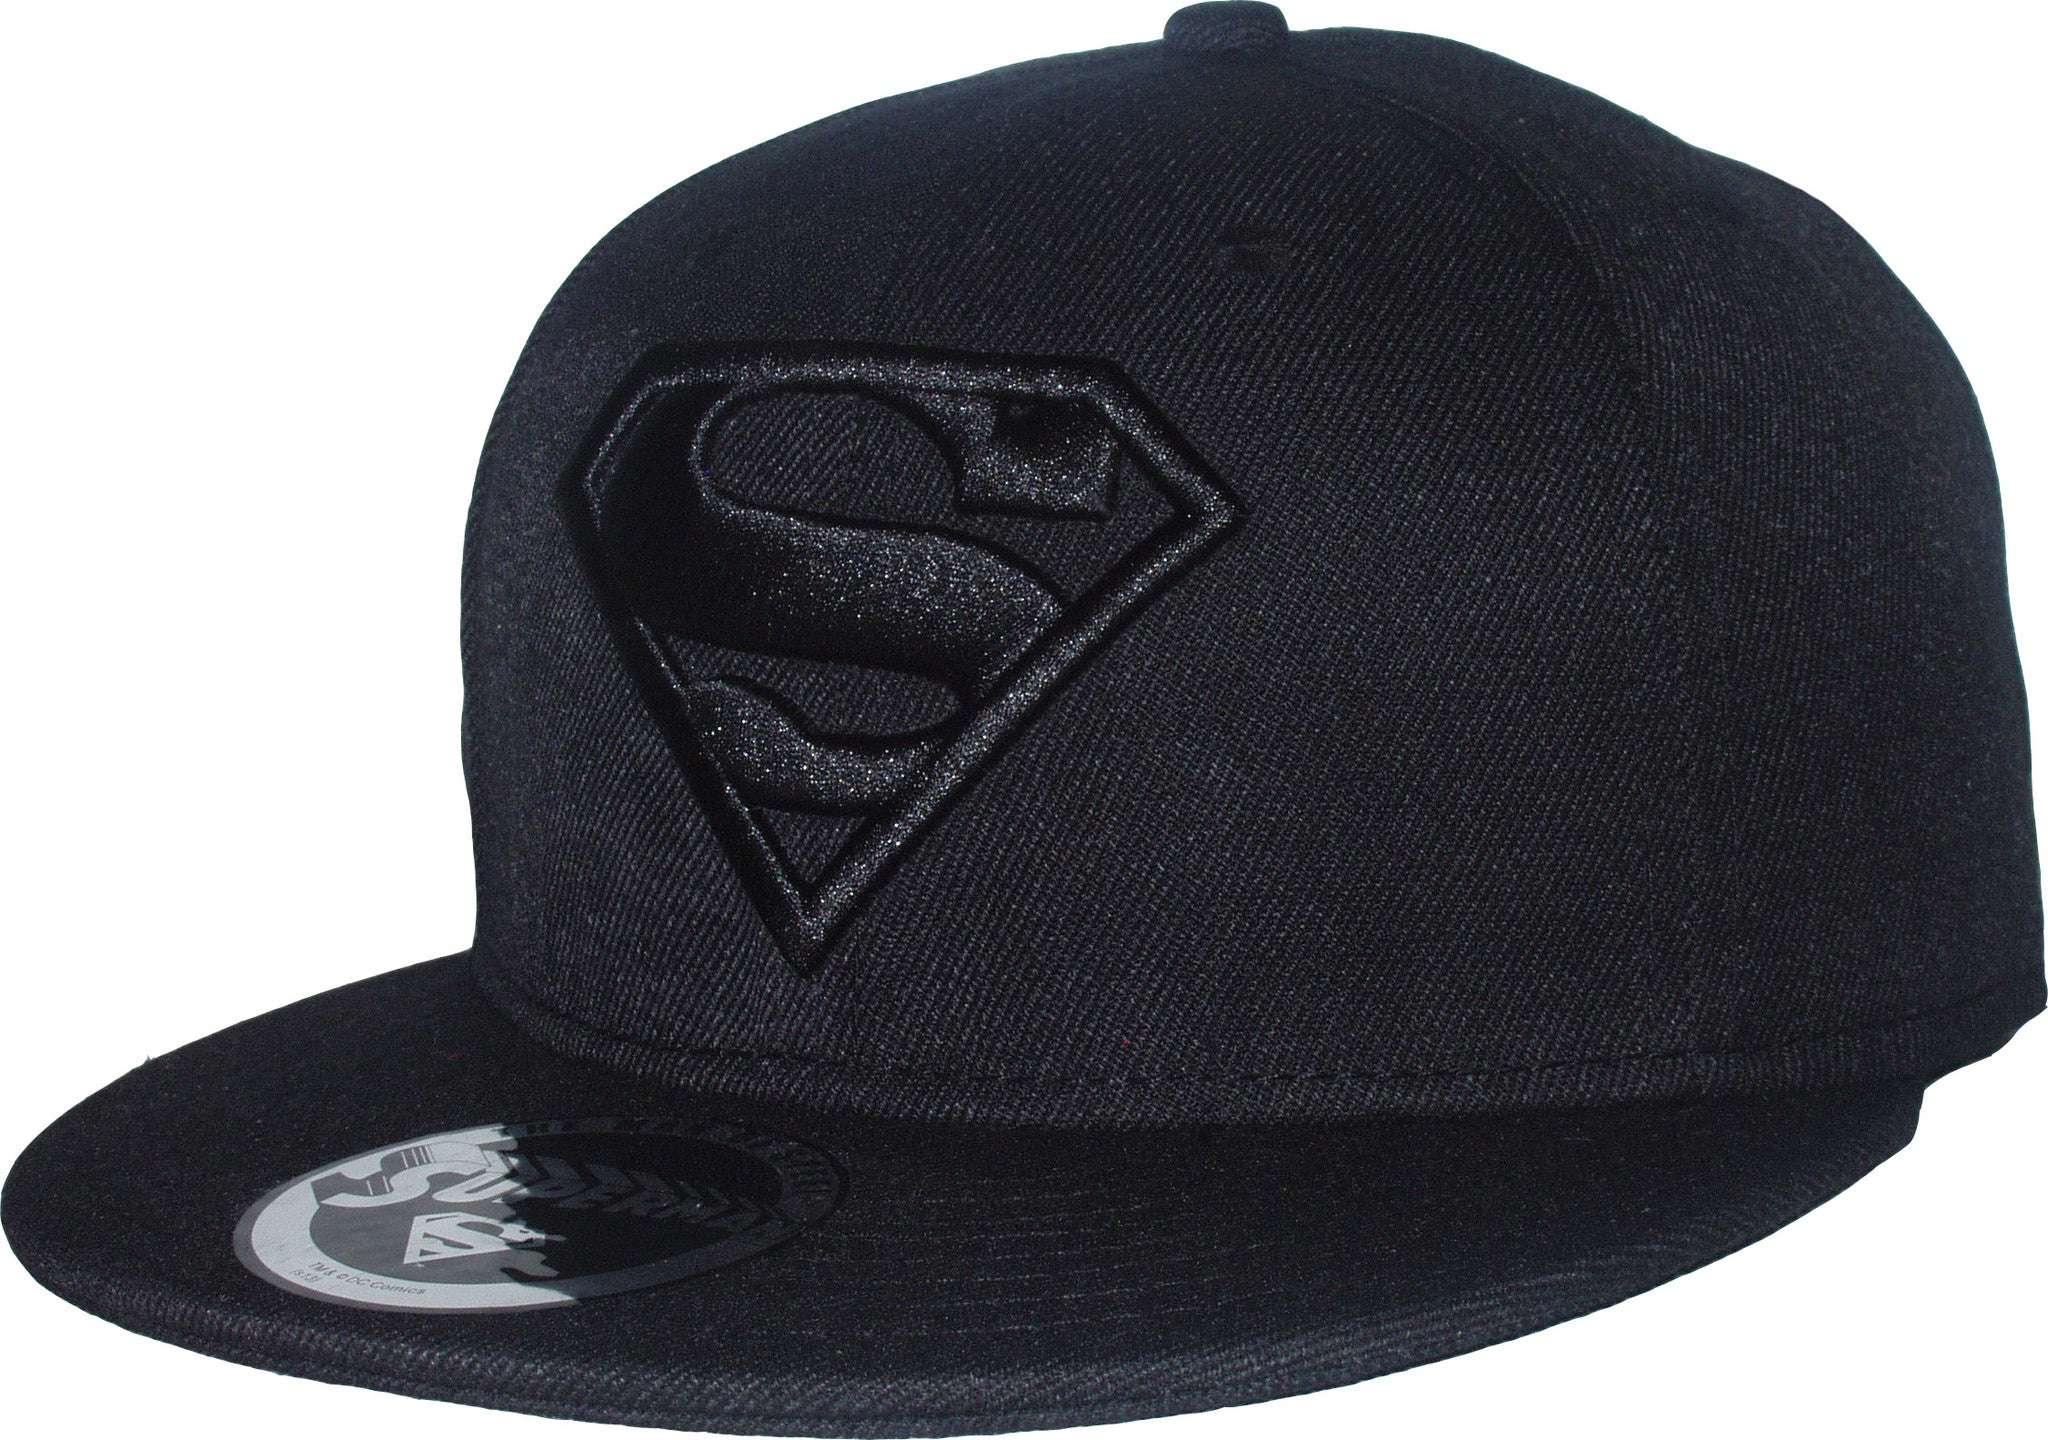 Superman DC Comics All Black Classic Logo Snapback Cap - pumpheadgear 2c51b120a27